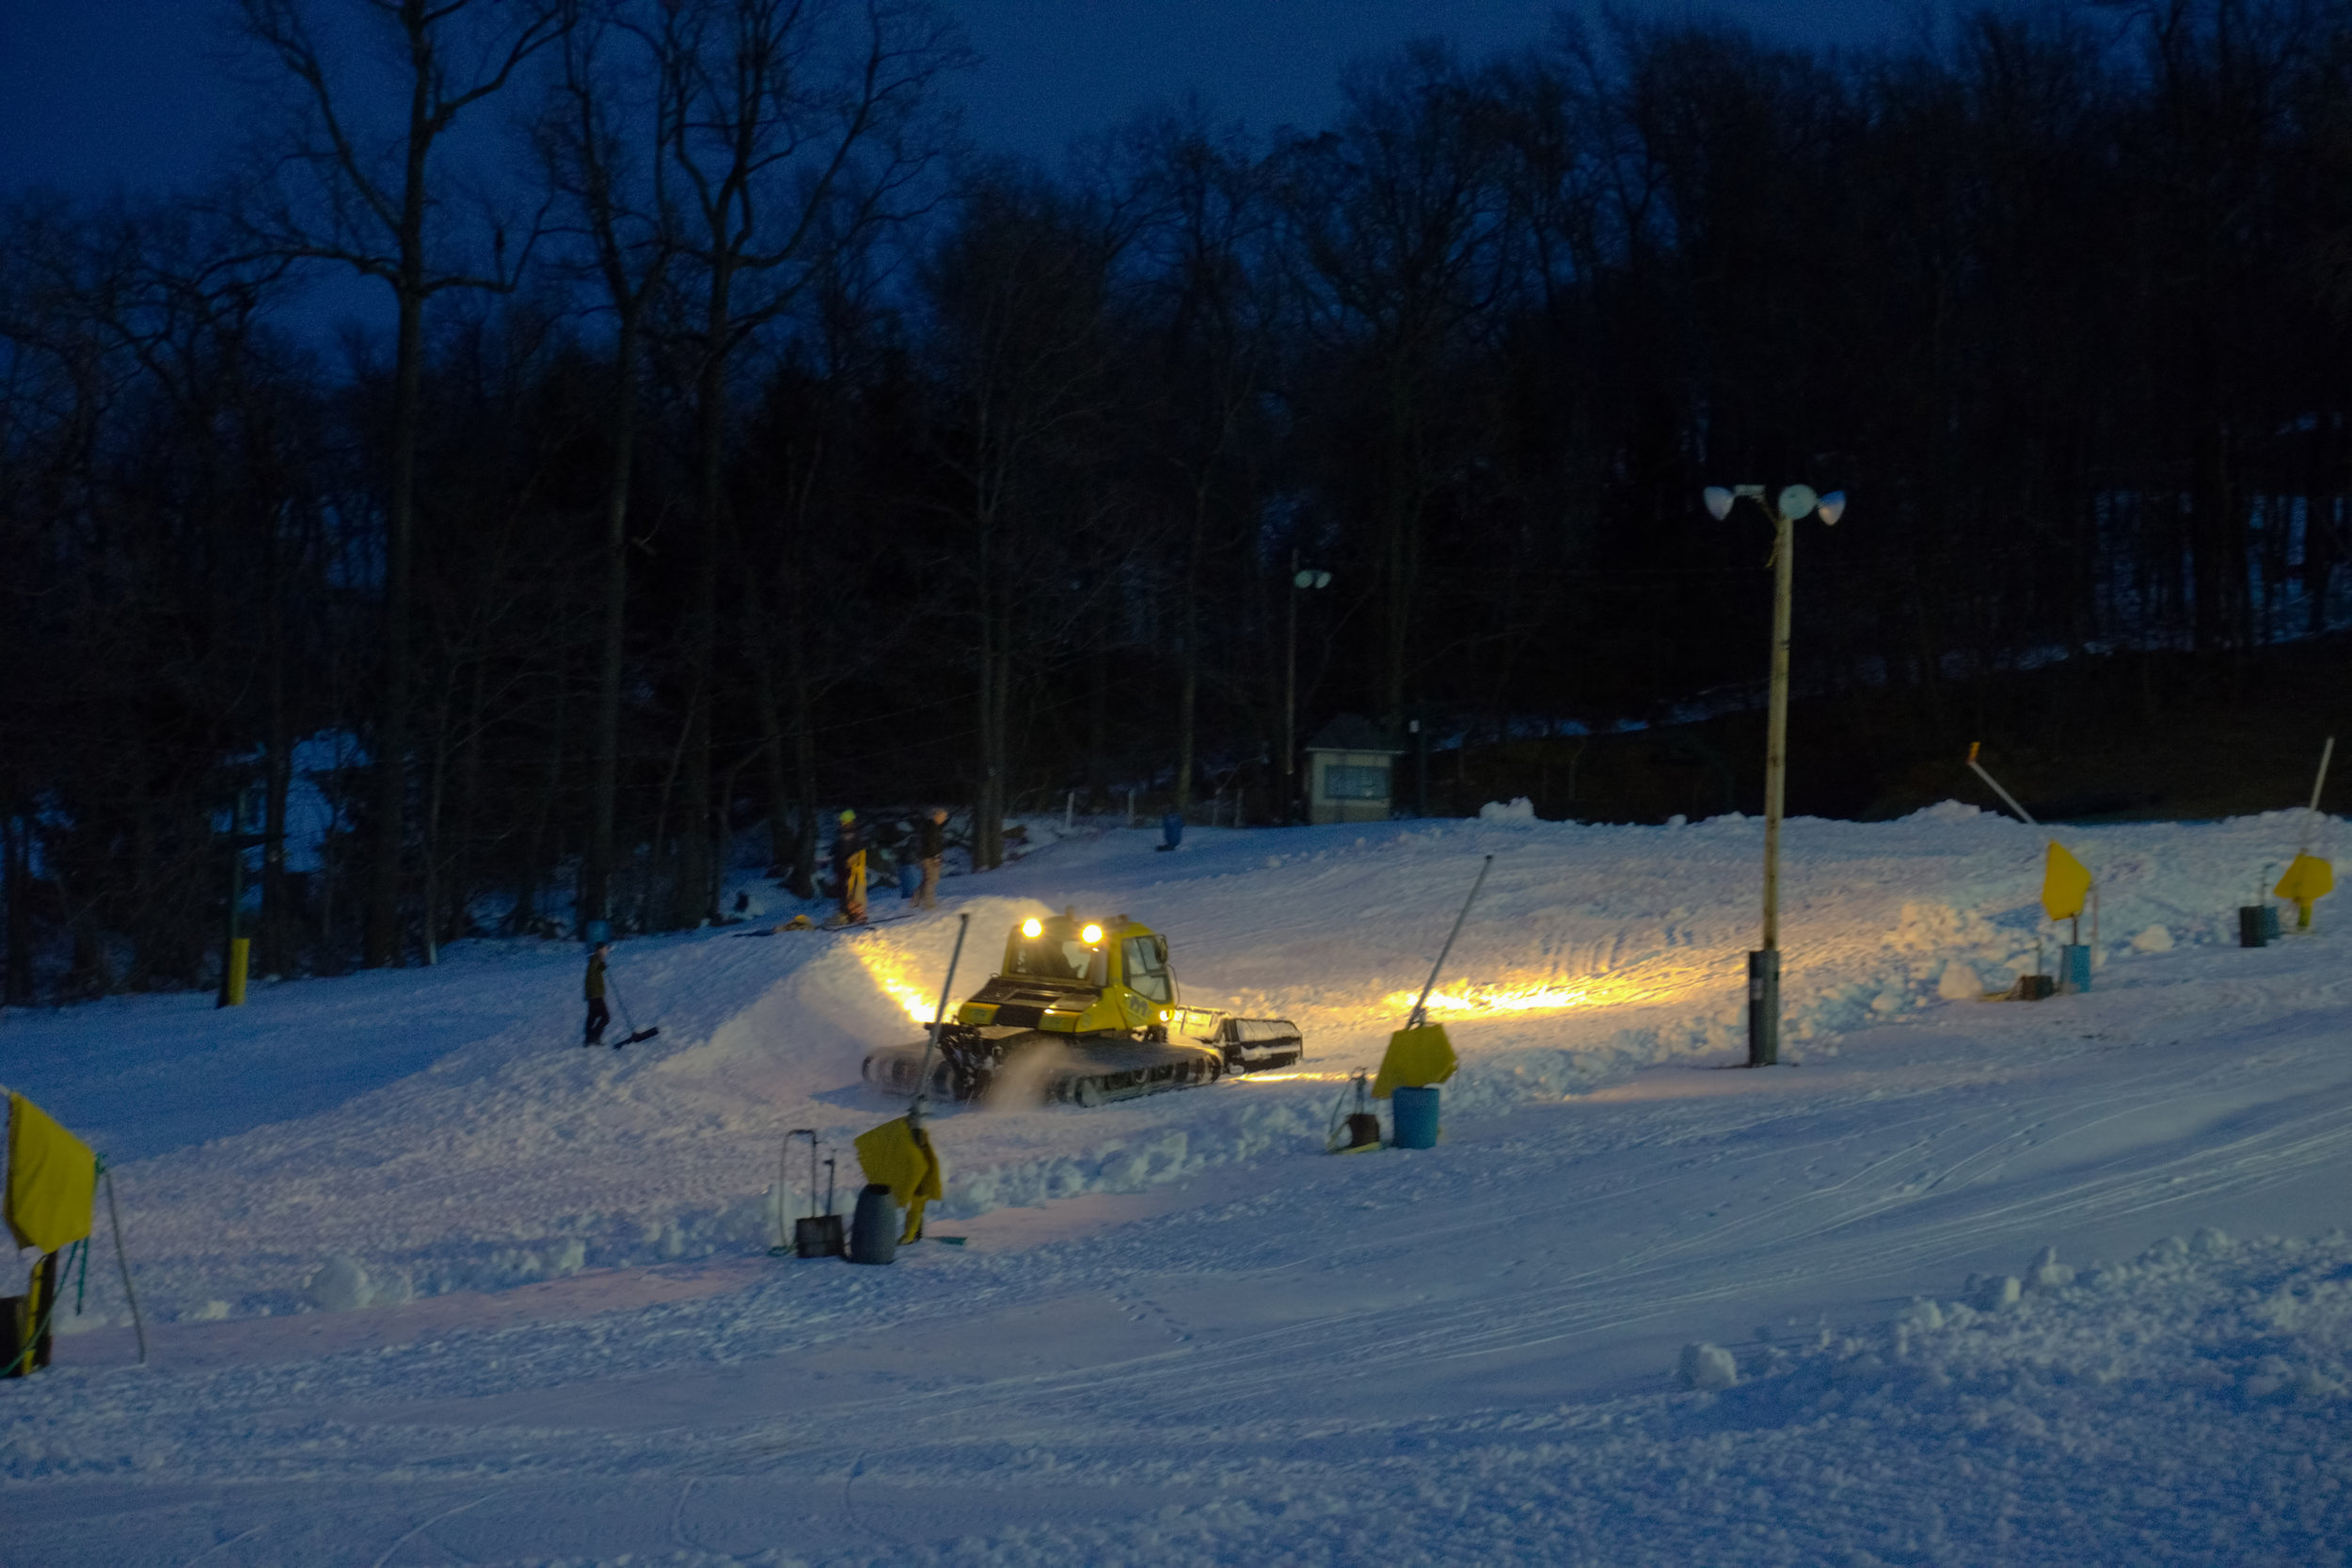 Snow crews working on the Terrain Park the night before opening day.